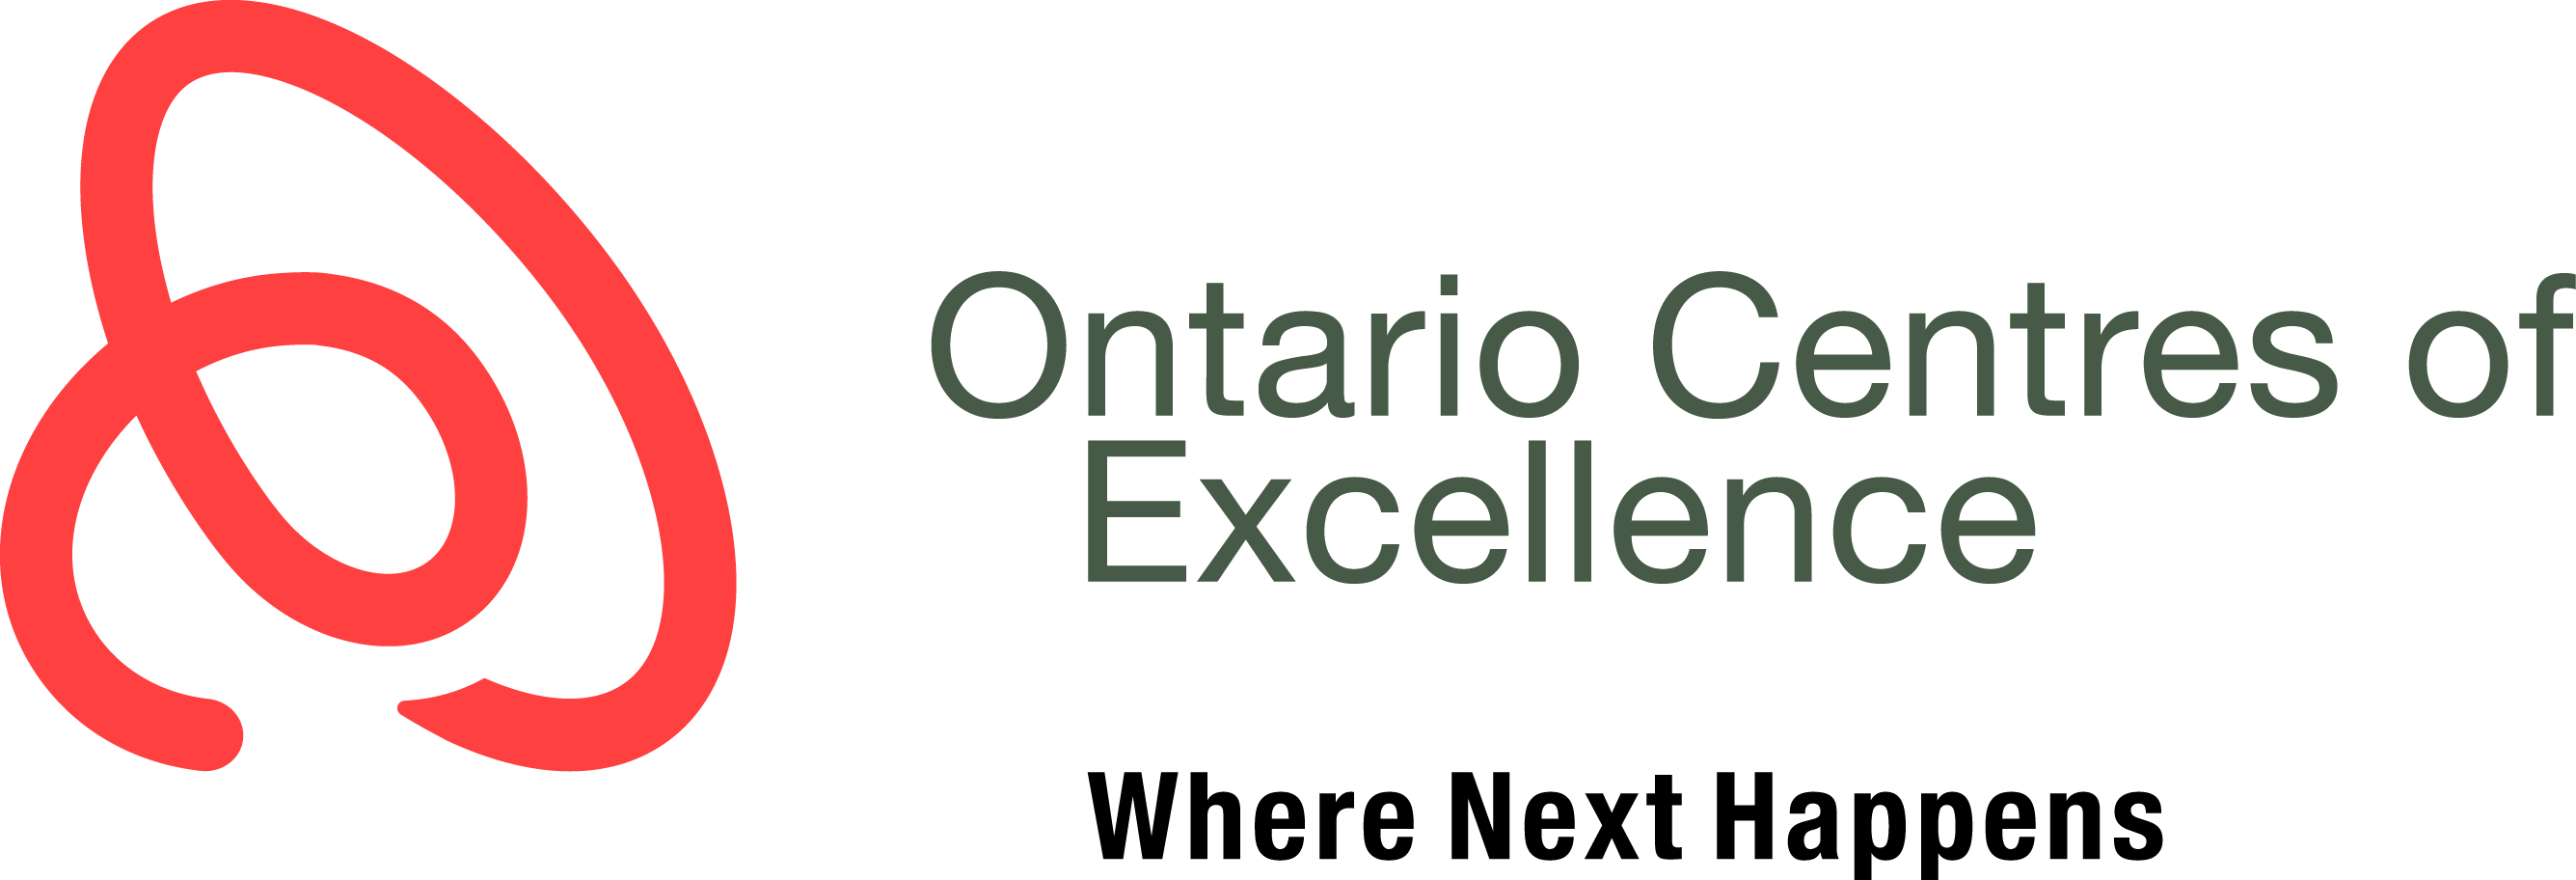 Ontario Centres of Excellence: Where Next Happens